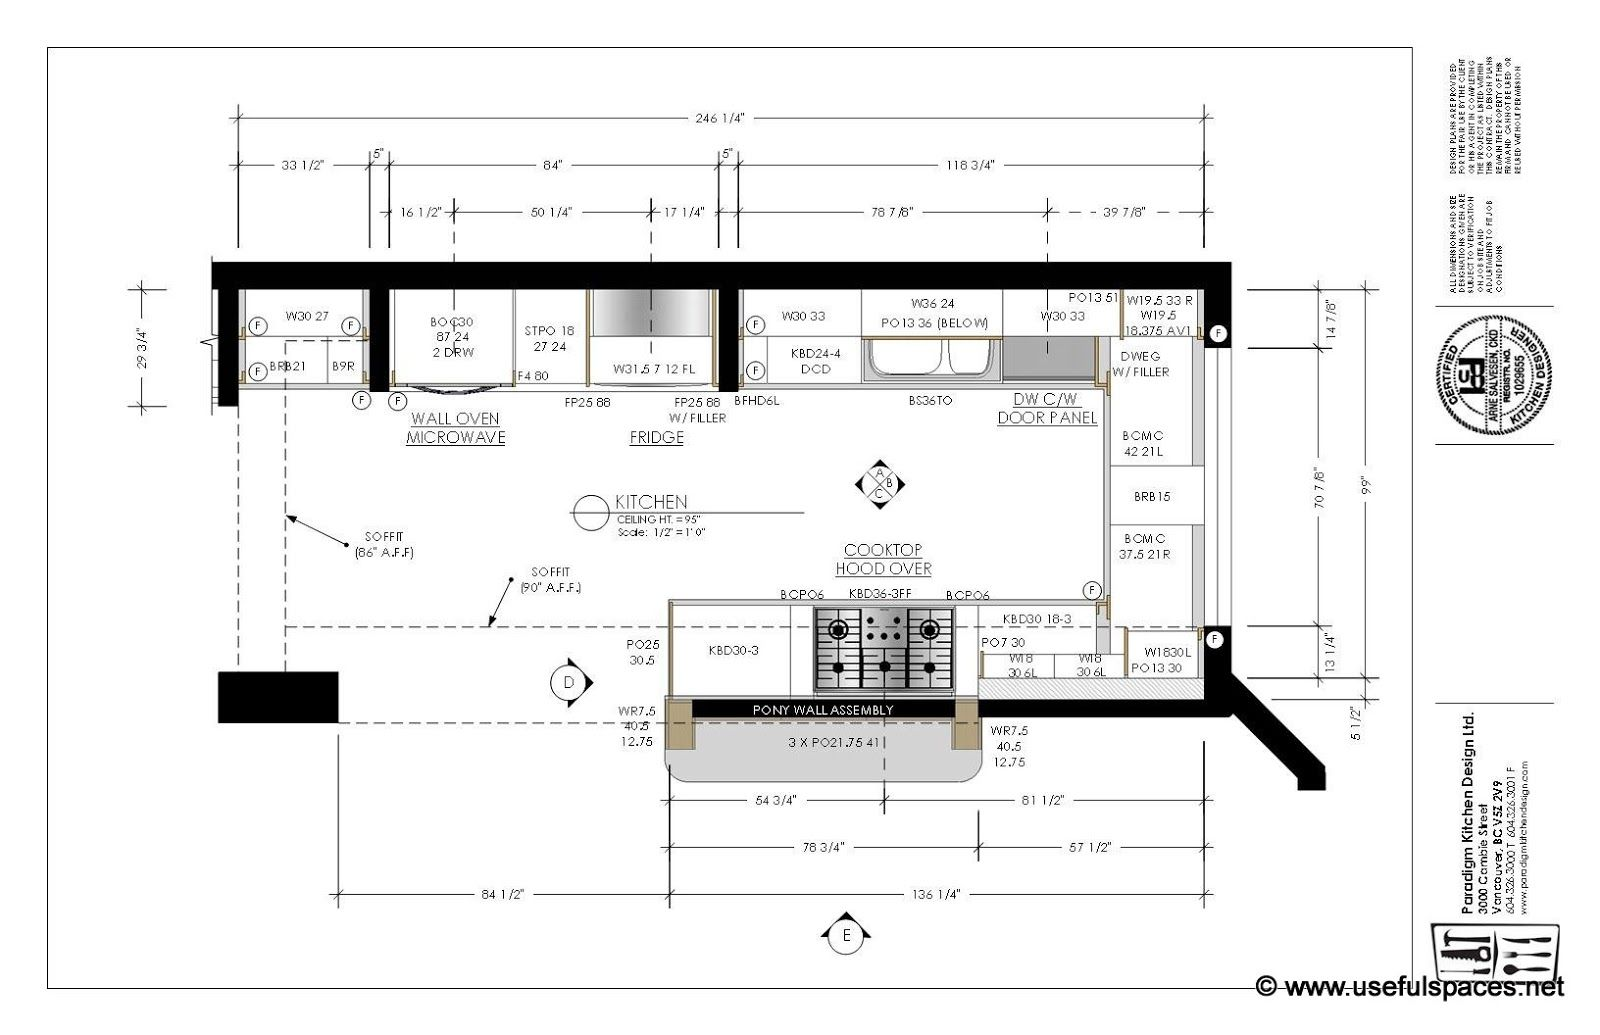 How To Lay Out A Kitchen Floor Plan: Kitchen Layout Templates Restaurant Floor Plan Samples